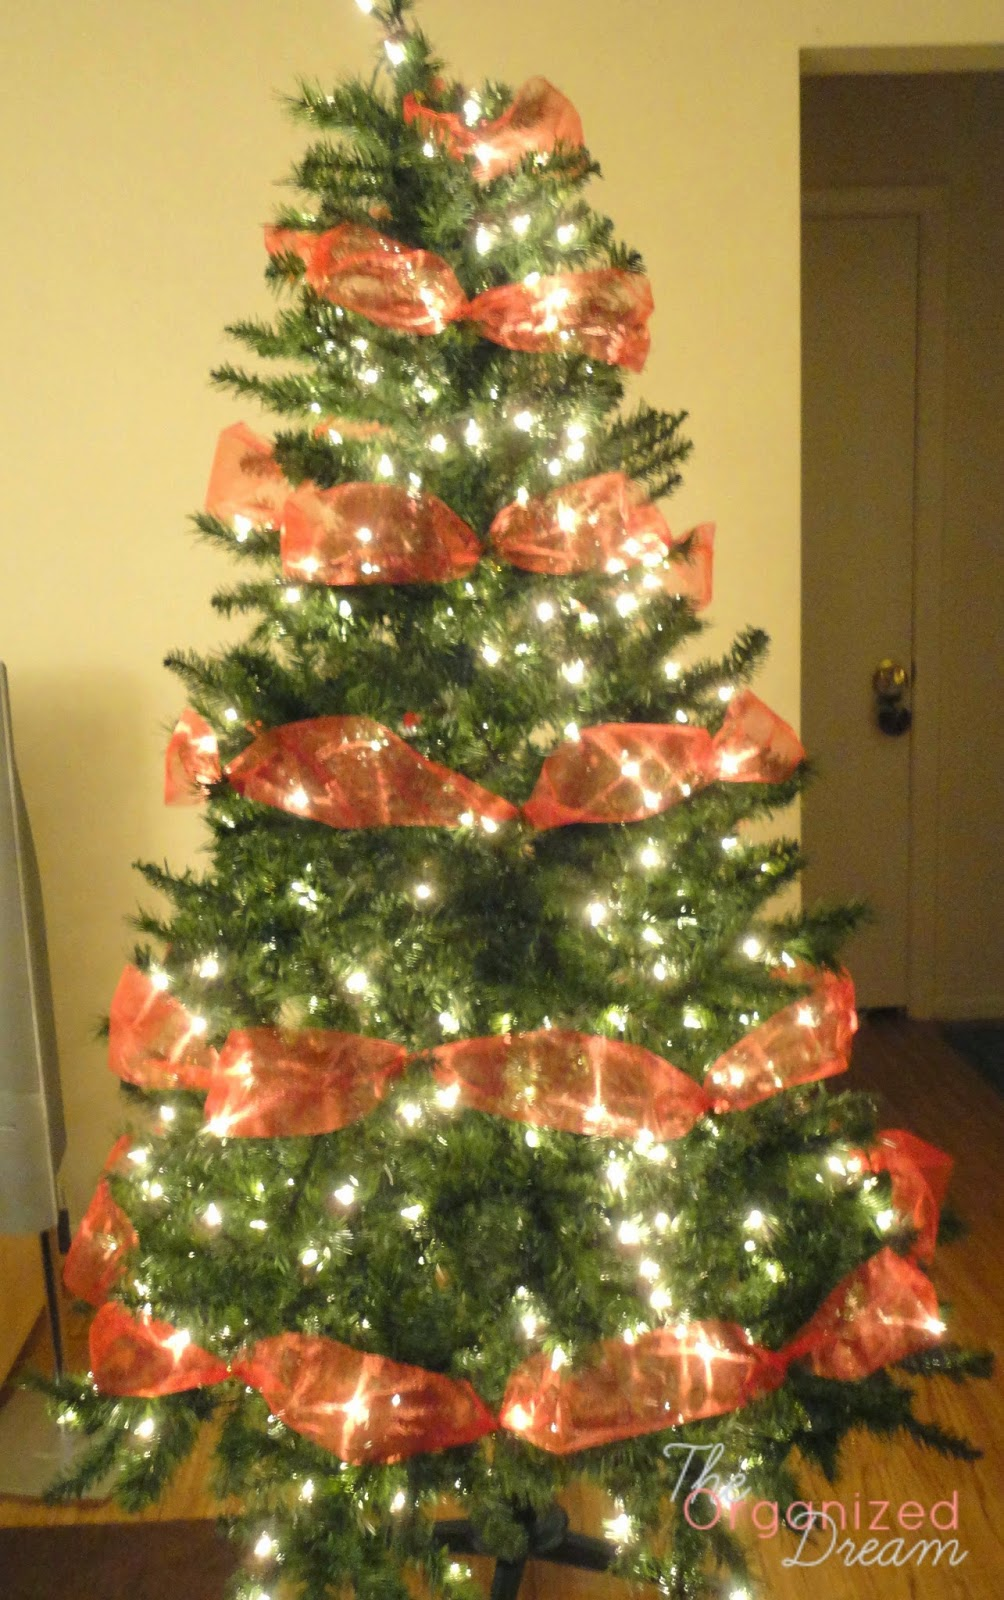 How To Decorate a Christmas Tree With Wide Mesh Ribbon - The ...